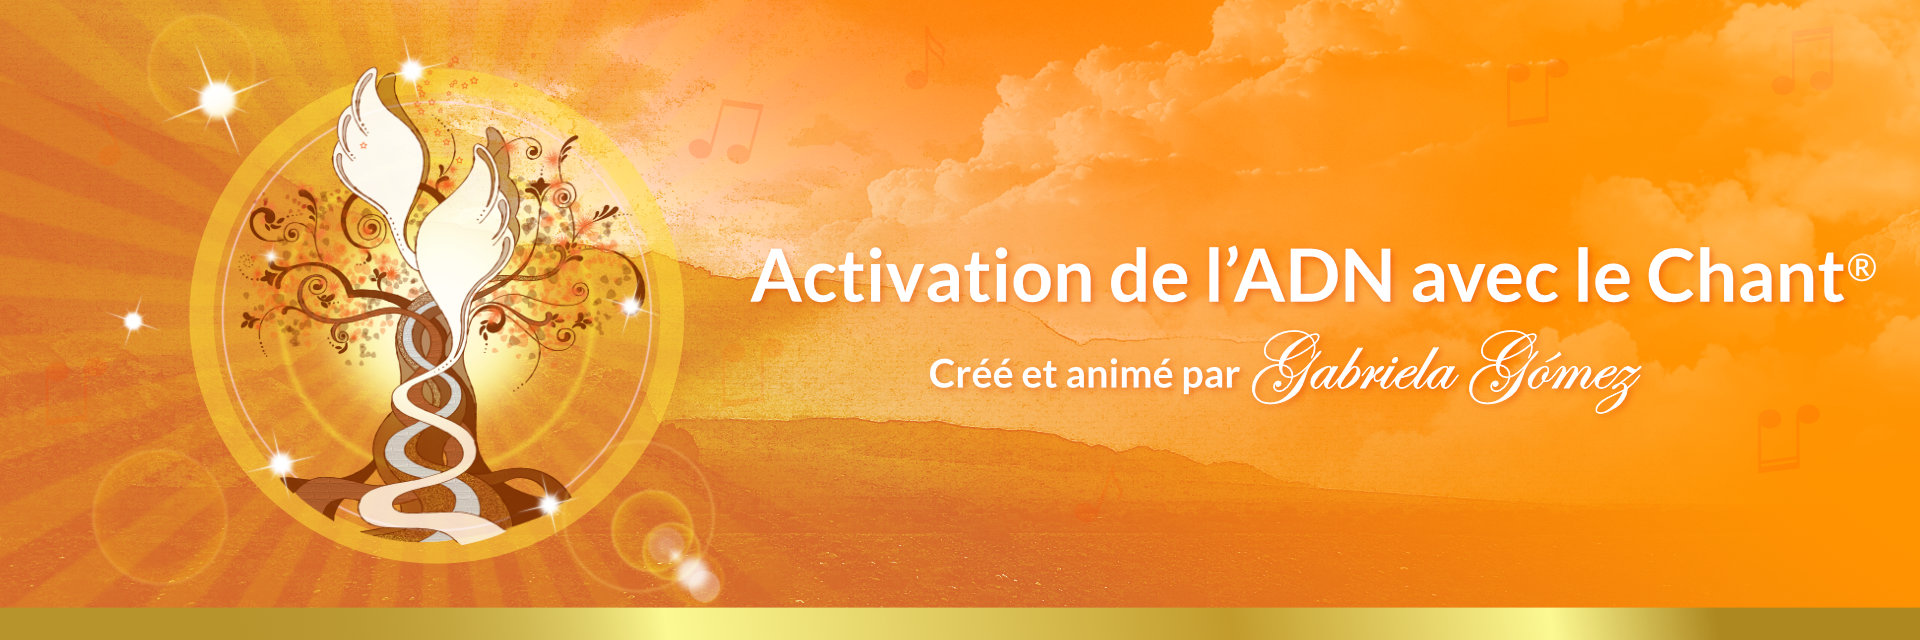 Activation de l'ADN avec le Chant®